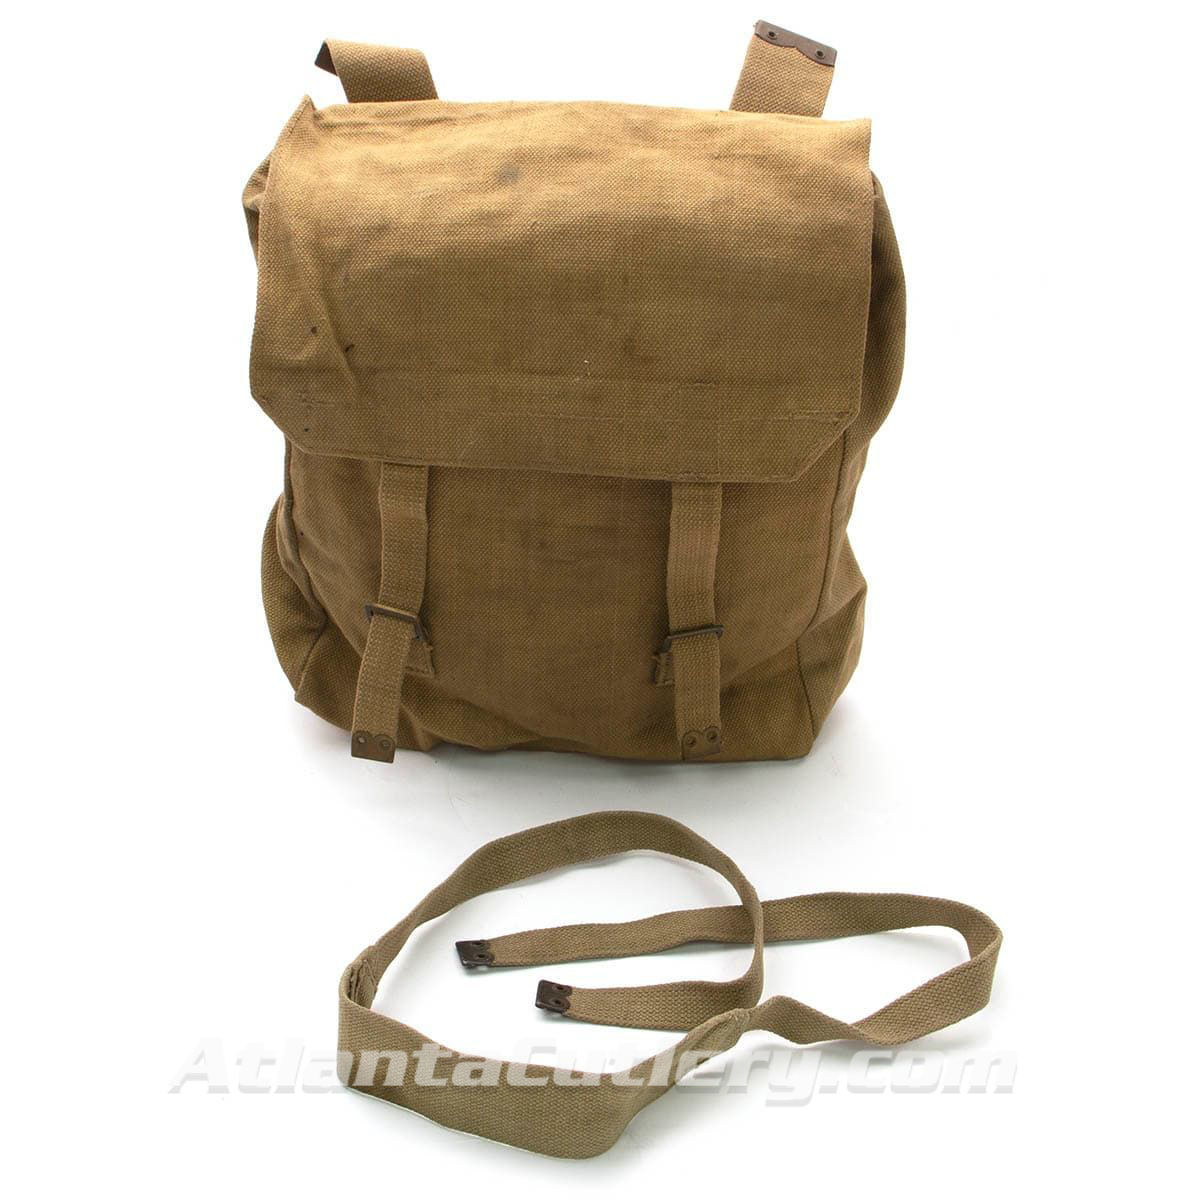 issued condition British military surplus canvas backpack has shoulder strap and attachments to connect to soldier's webbing